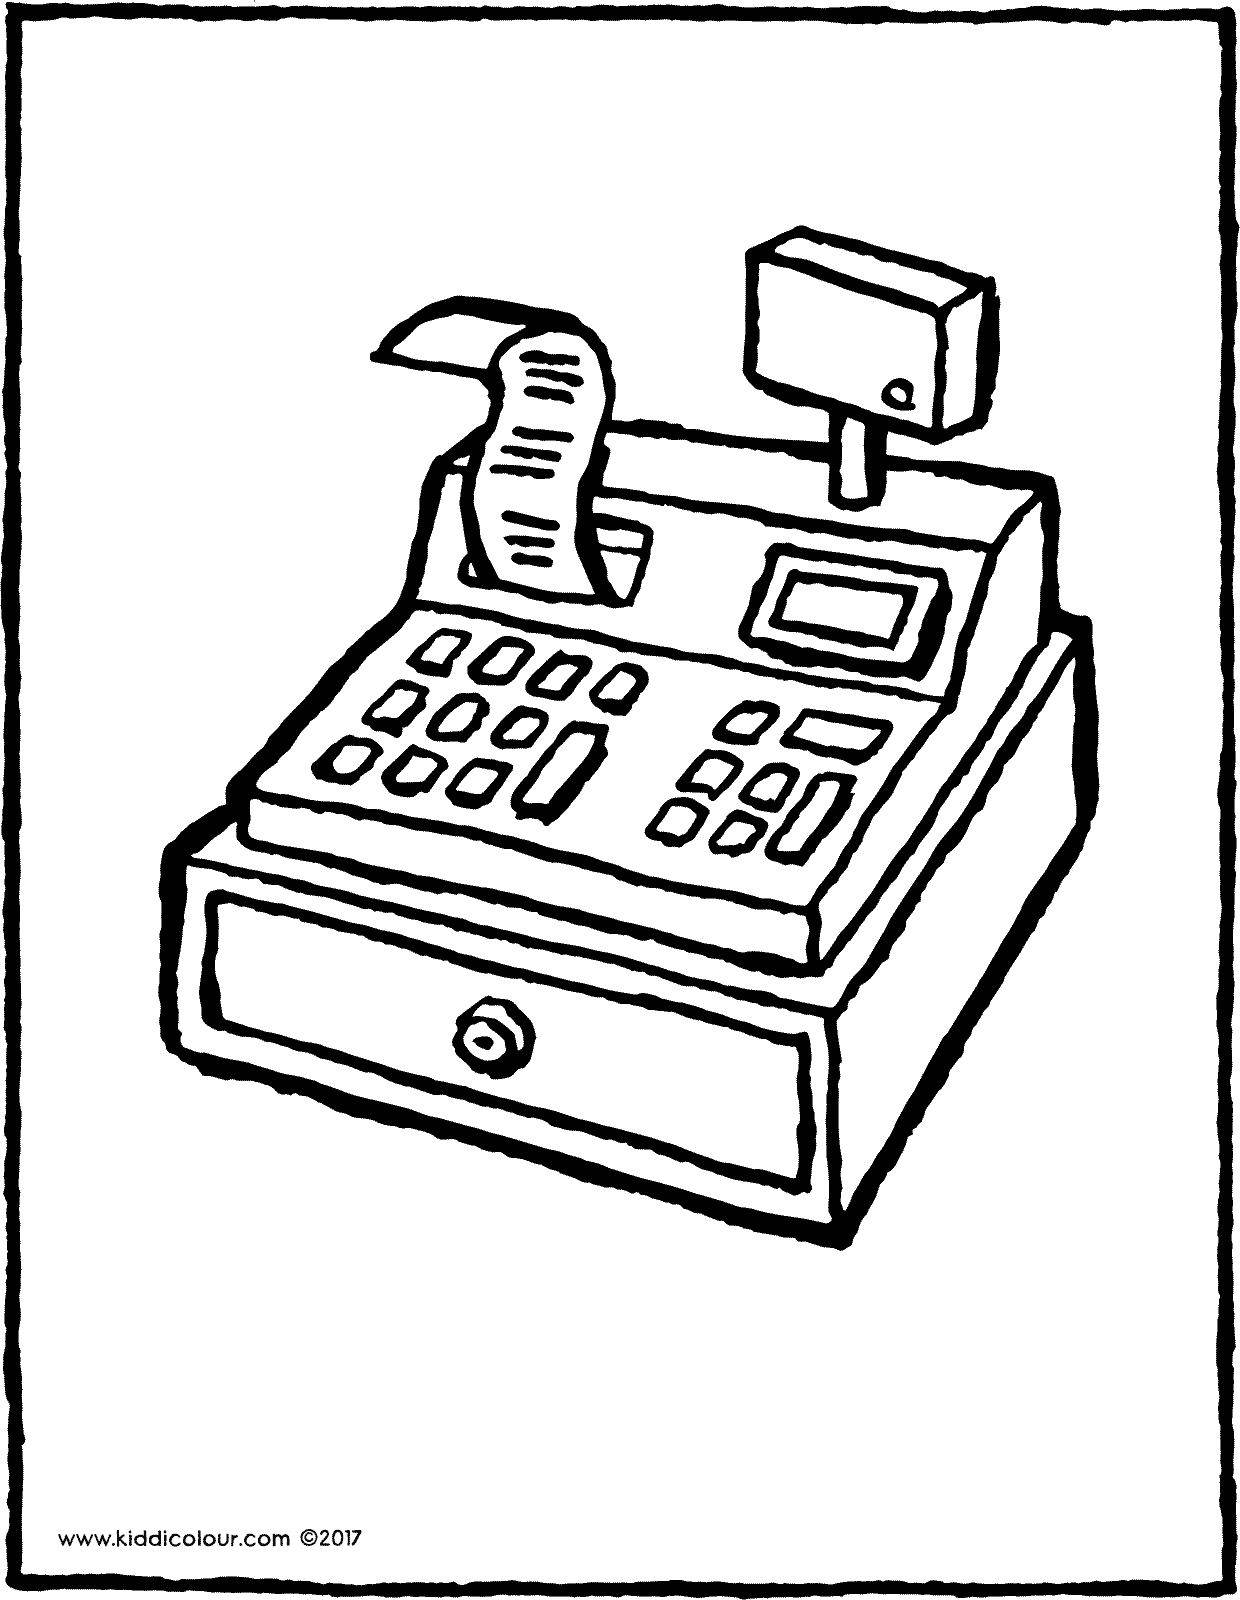 cash register colouring page drawing picture 01V